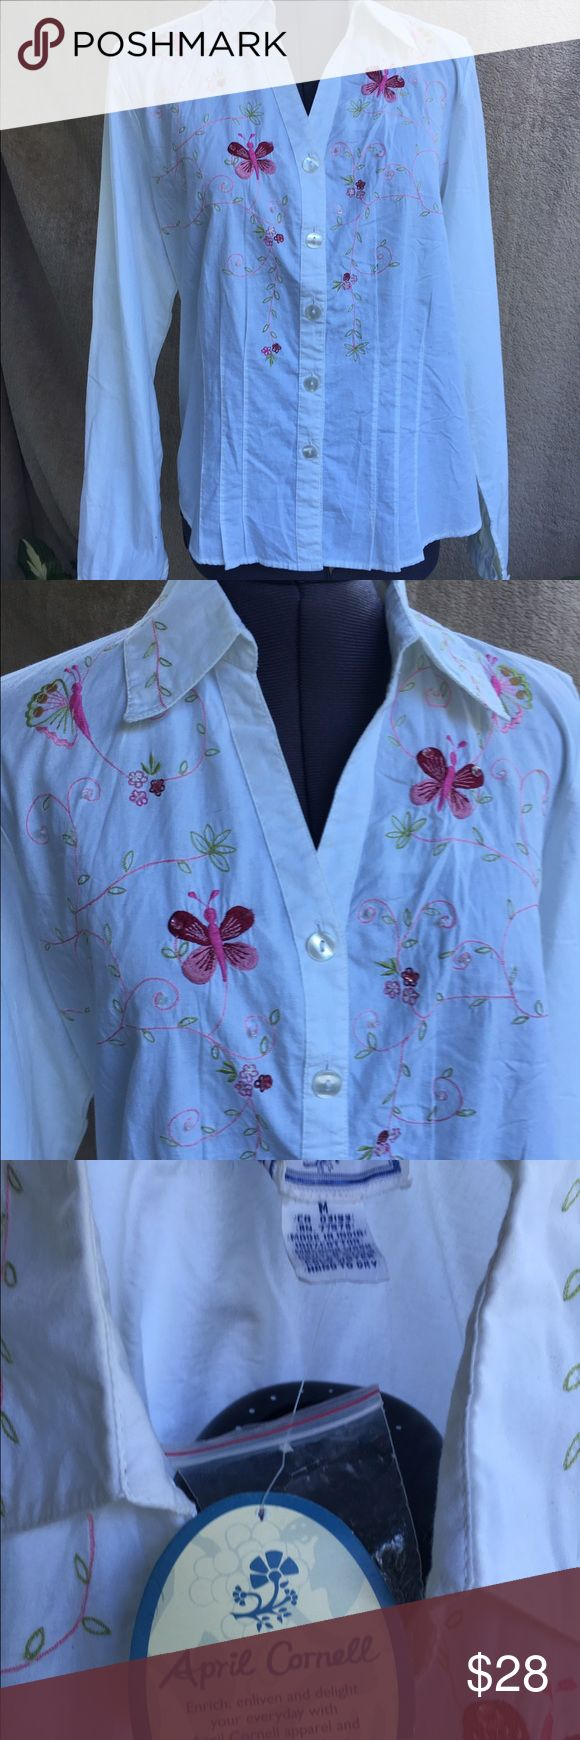 April cornel blouse New w/ tags attached, April cornel embroidered cotton blouse, beautiful spring design w/ flowers & butterflies, size med. april cornell Tops Blouses